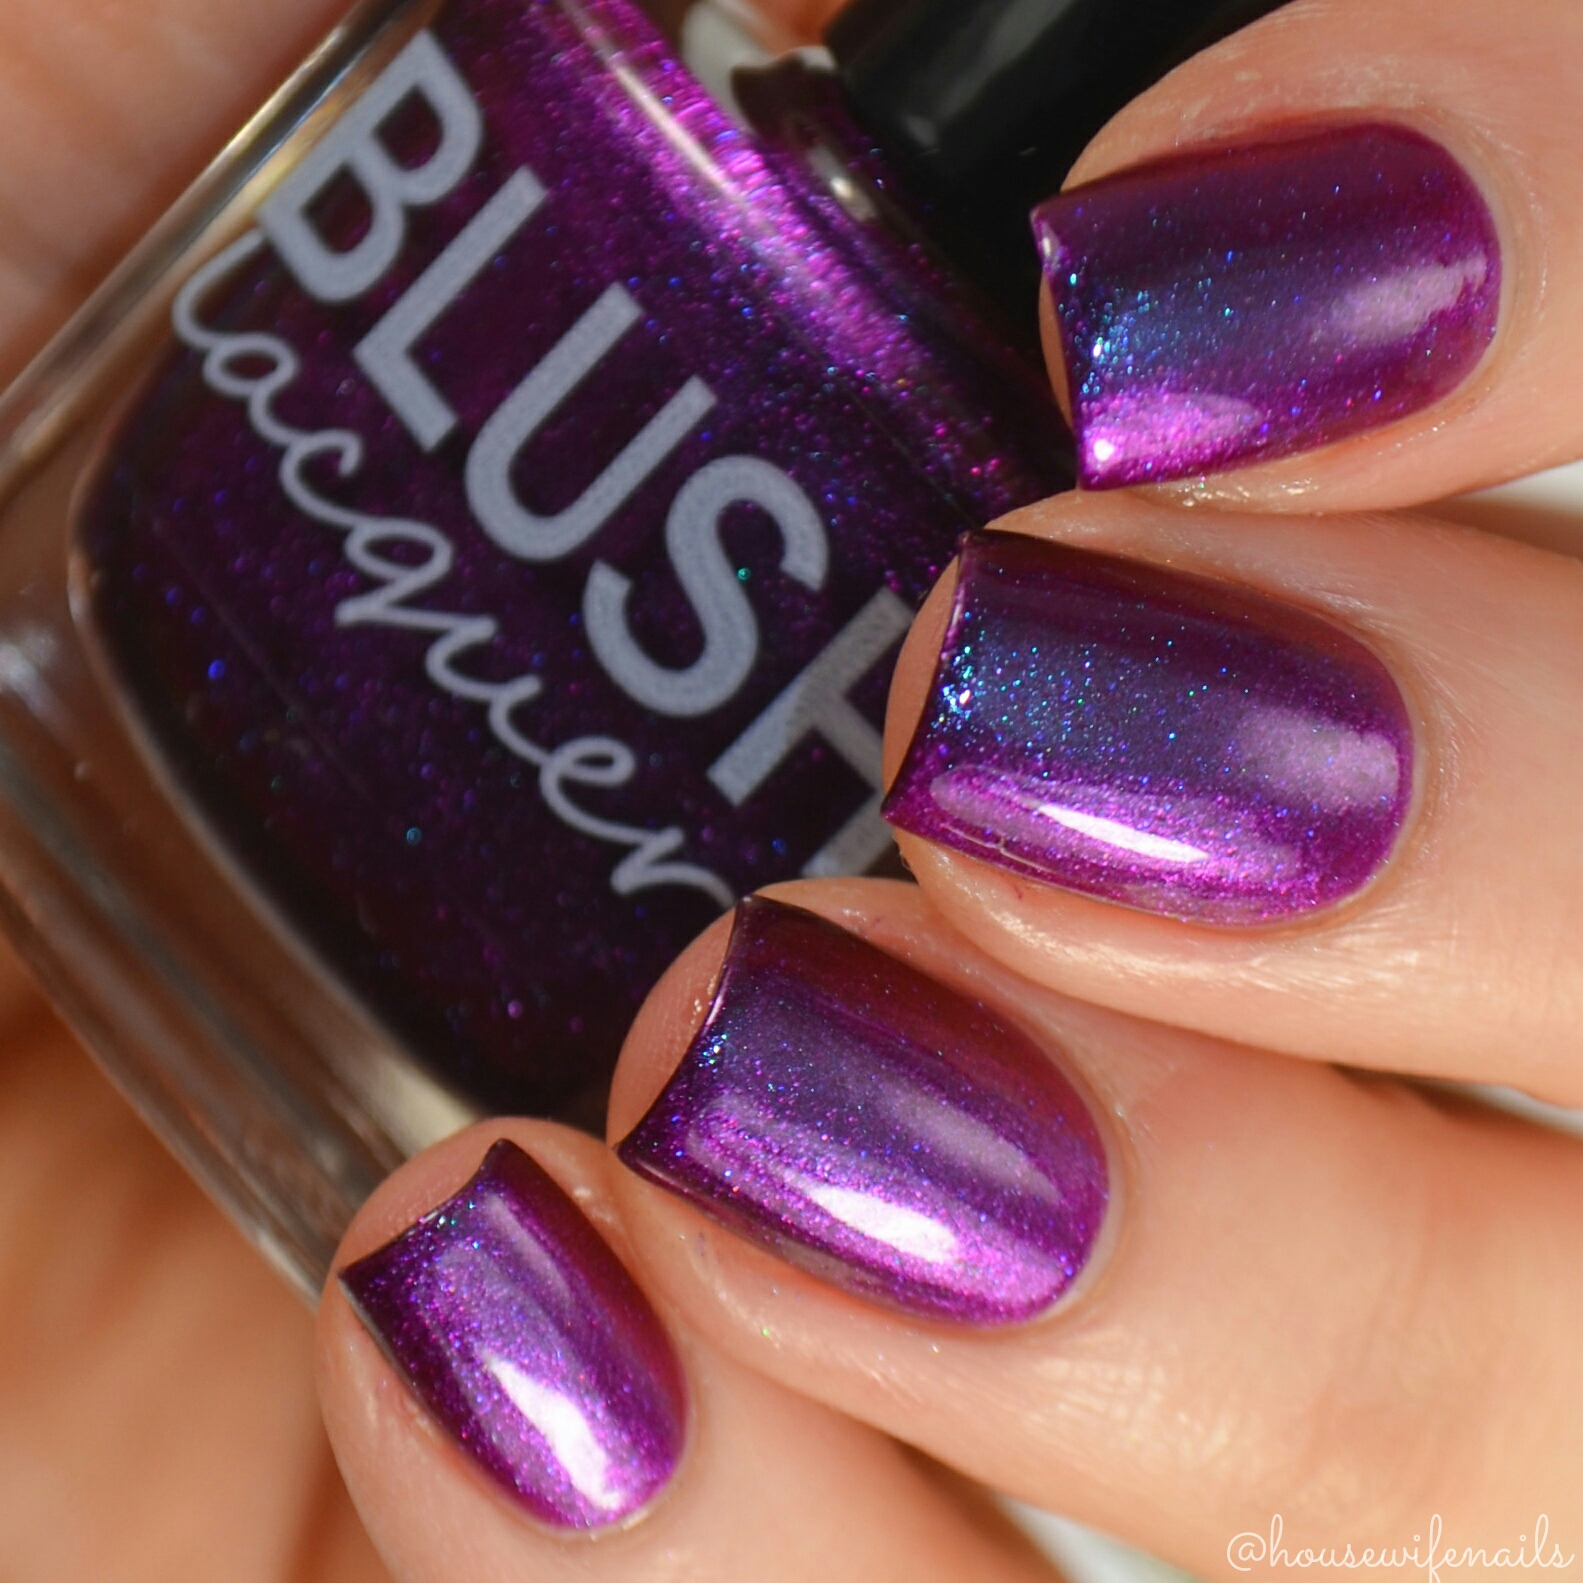 lady-of-the-mask-by-blush-lacquers-available-at-girly-bits-cosmetics-housewifenails-2-.jpg